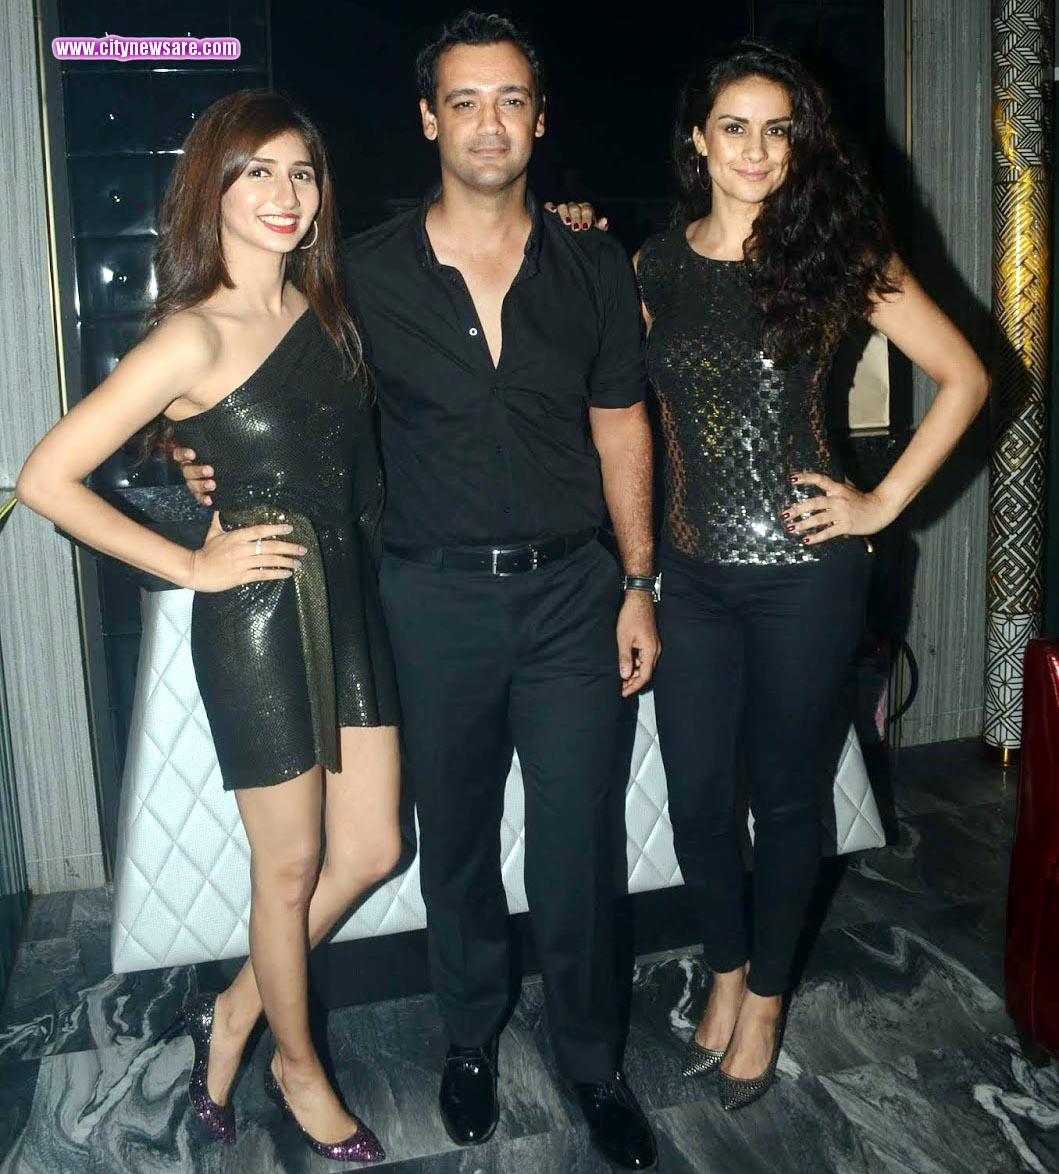 From left Tanvi Shah, Rehan Poncha and Gul Panag at the launch of newly opened night club in Juhu